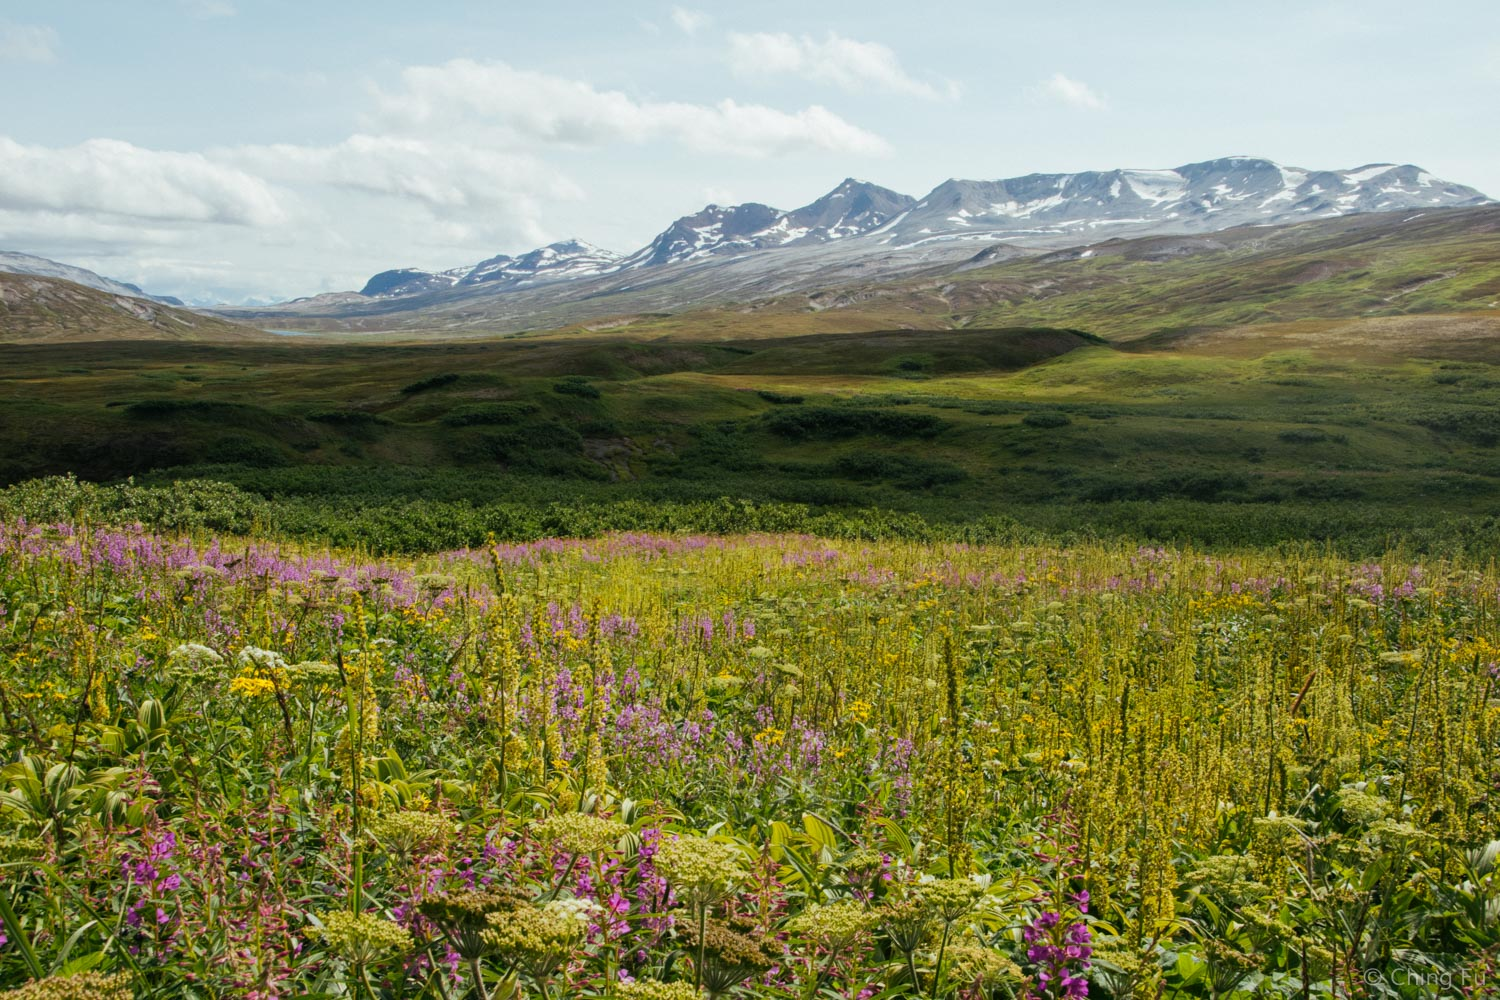 Tons of wildflowers.